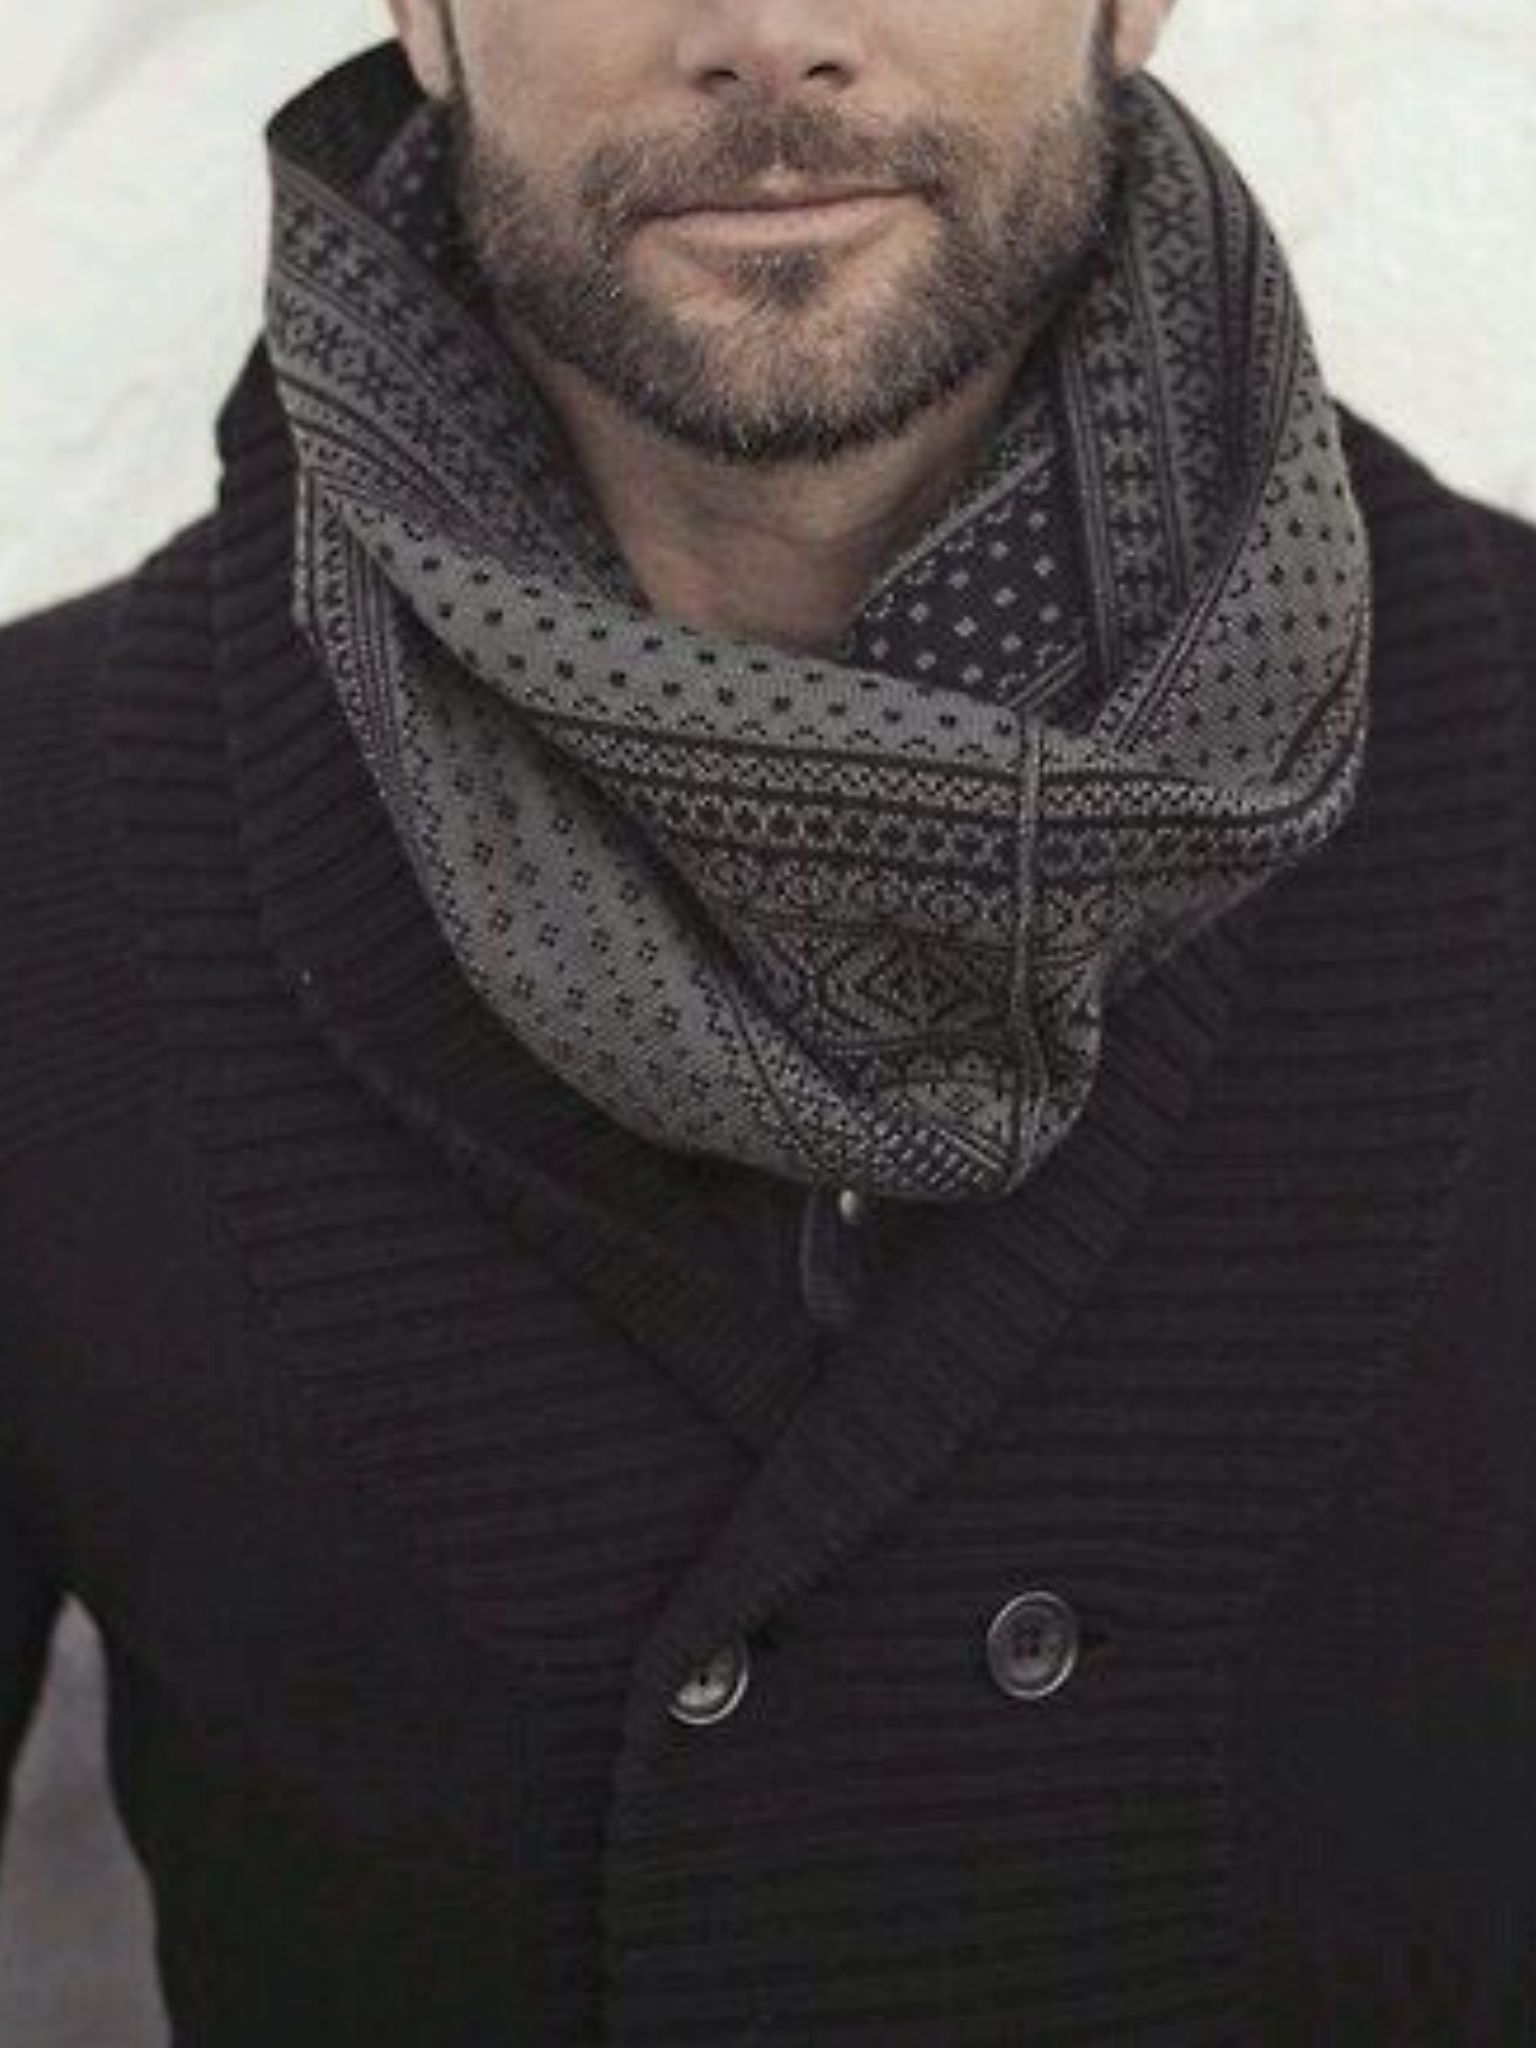 Men's fashion Patterned Infinity Scarf Mens infinity